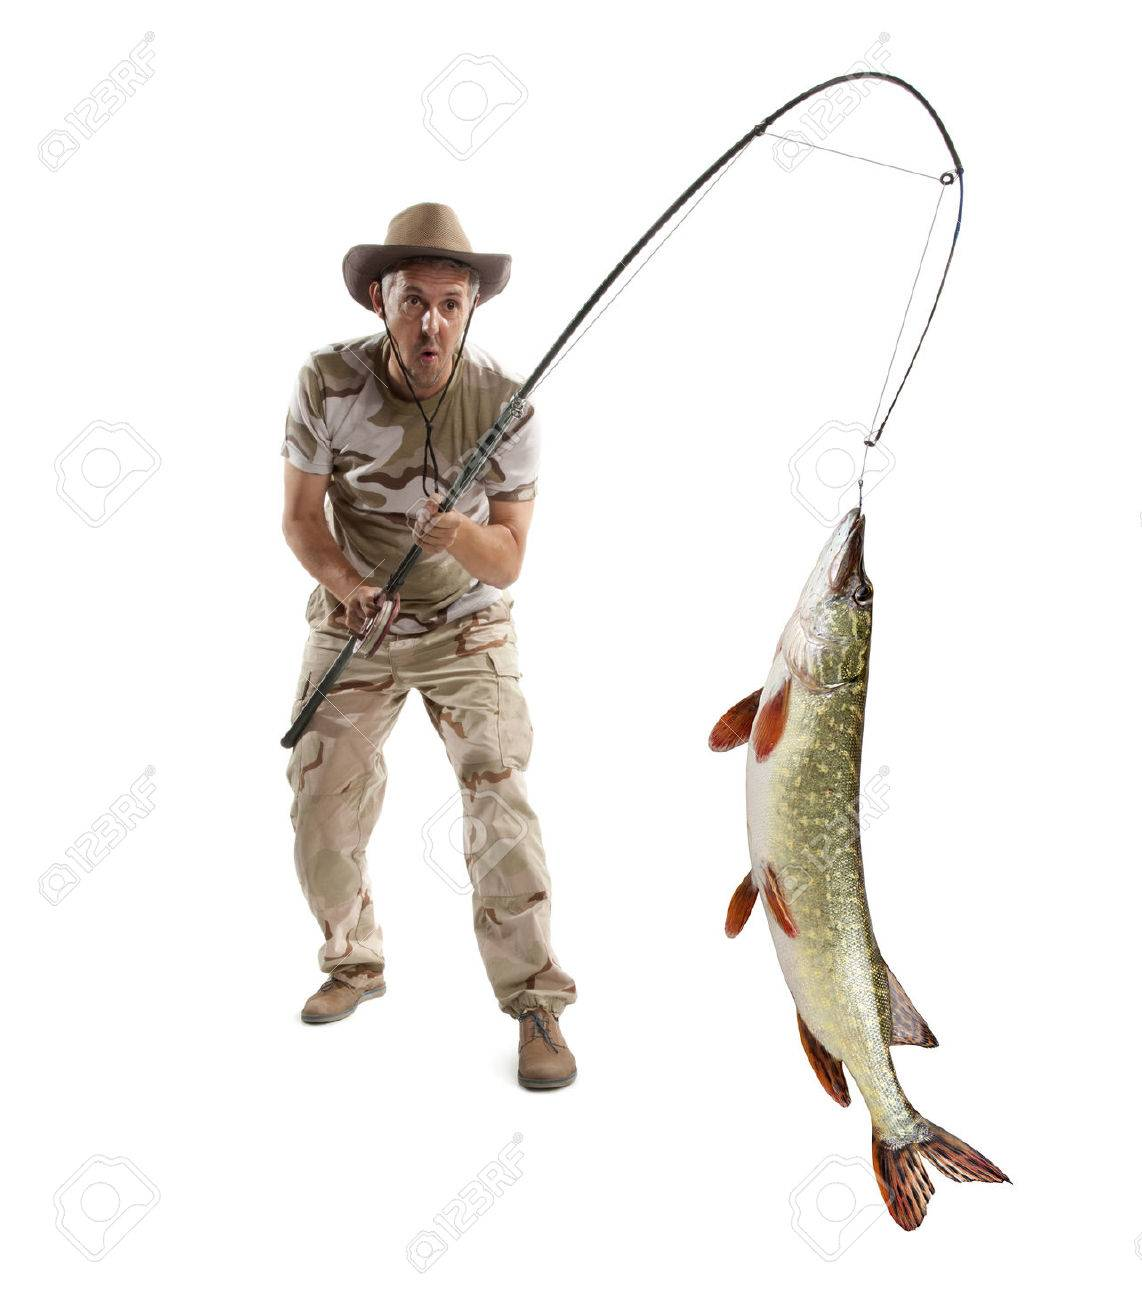 Fisherman with big fish - Pike (Esox Lucius) isolated on white - 44581671